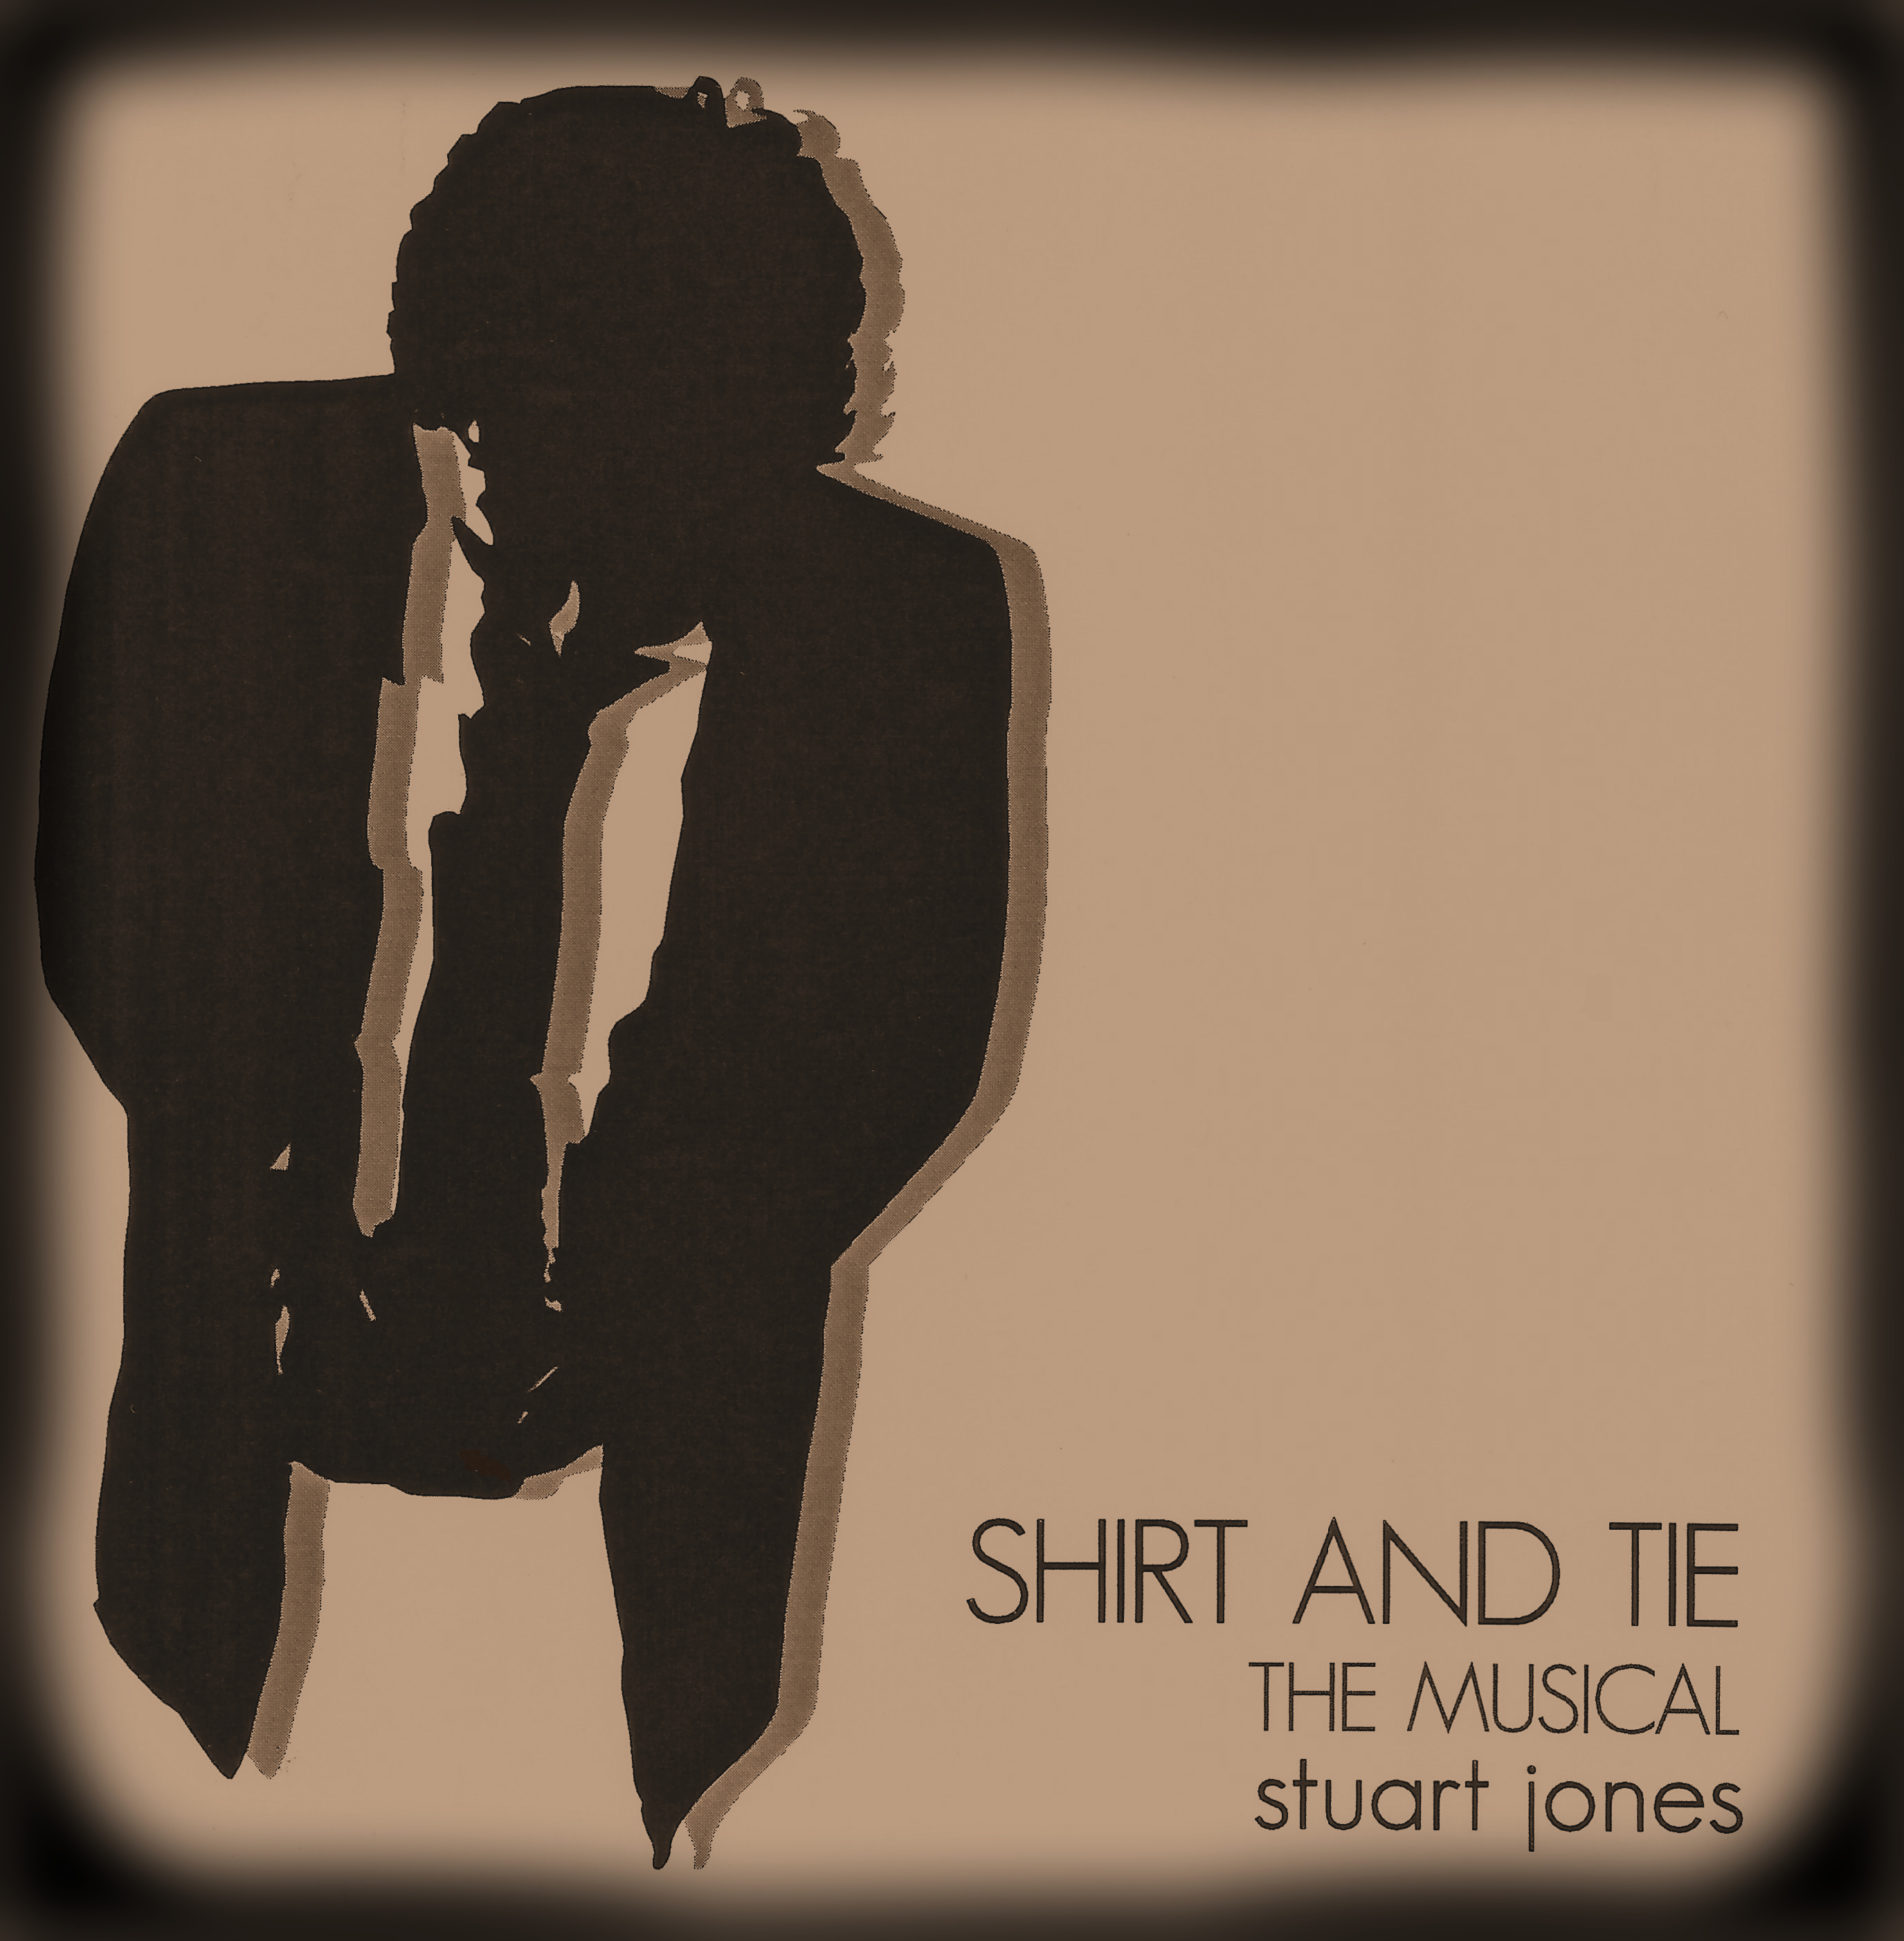 Shirt And Tie - Album